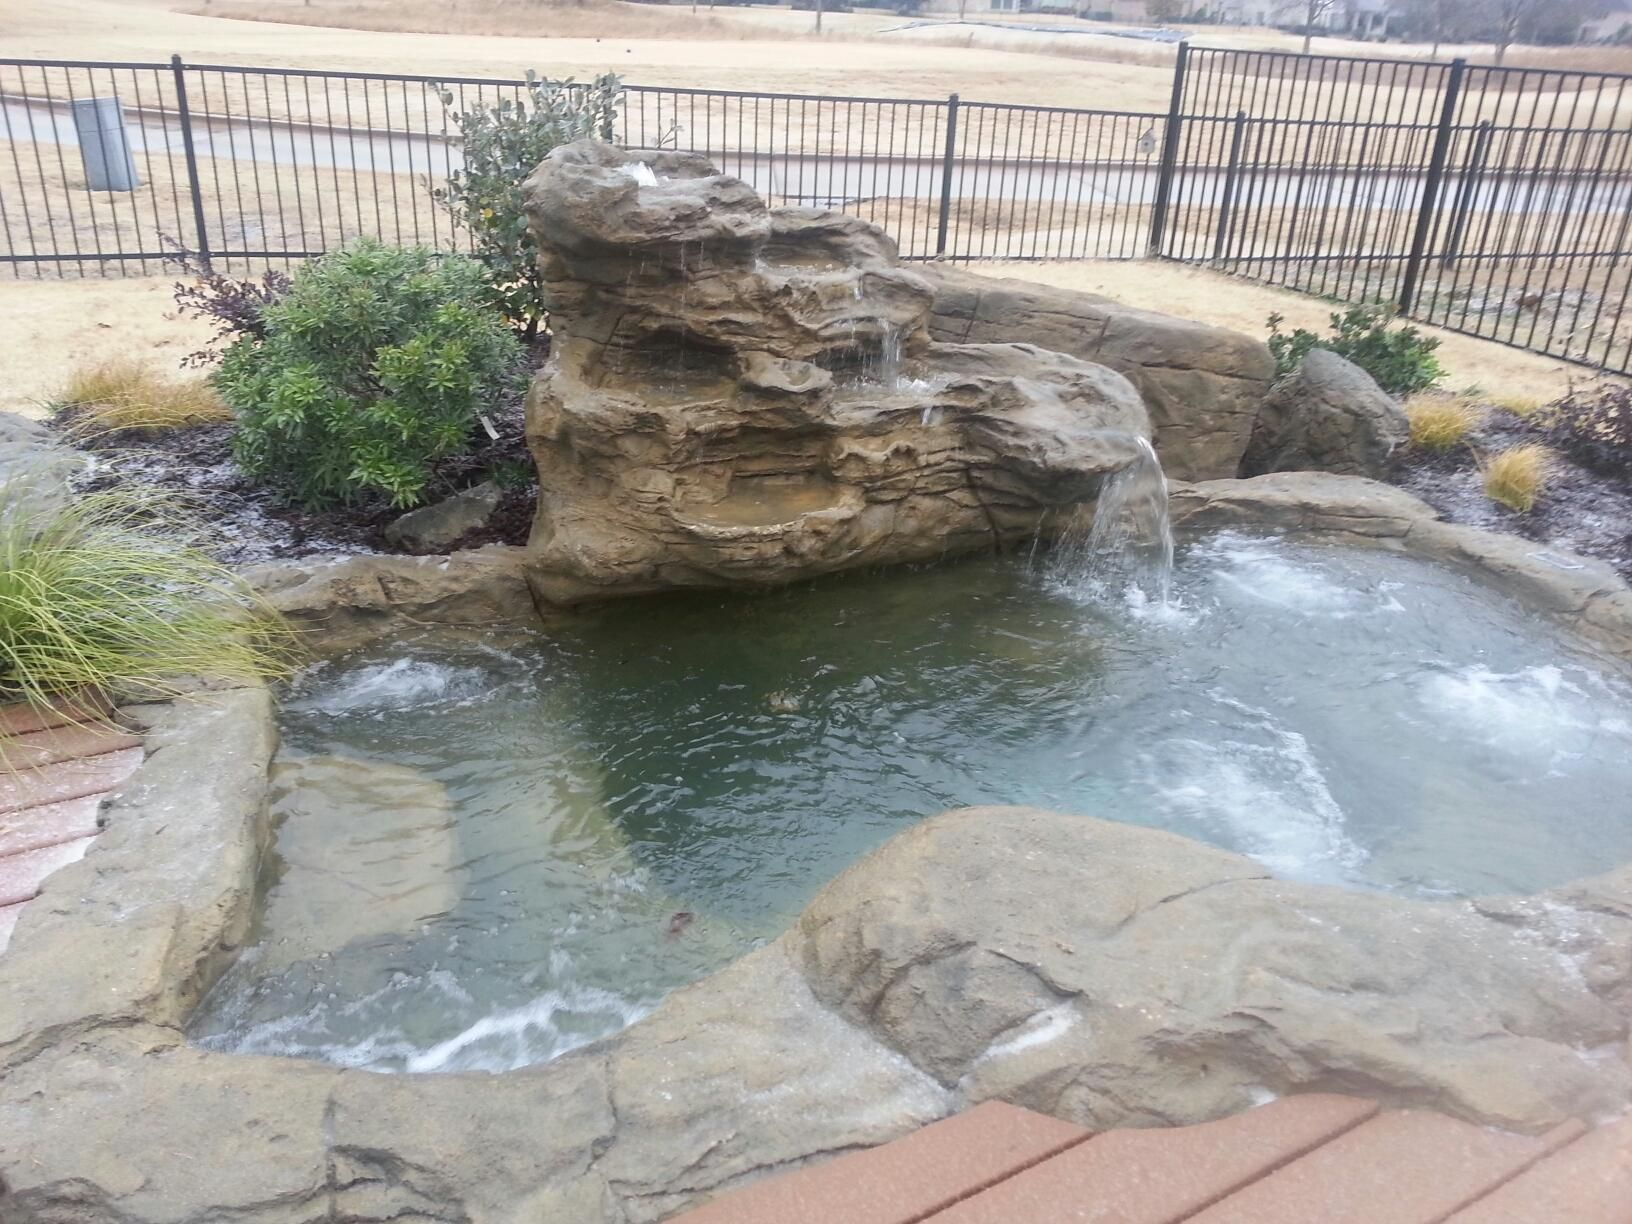 This Extra Large Pond Is Shown As A Hot Tub Spa With Jets